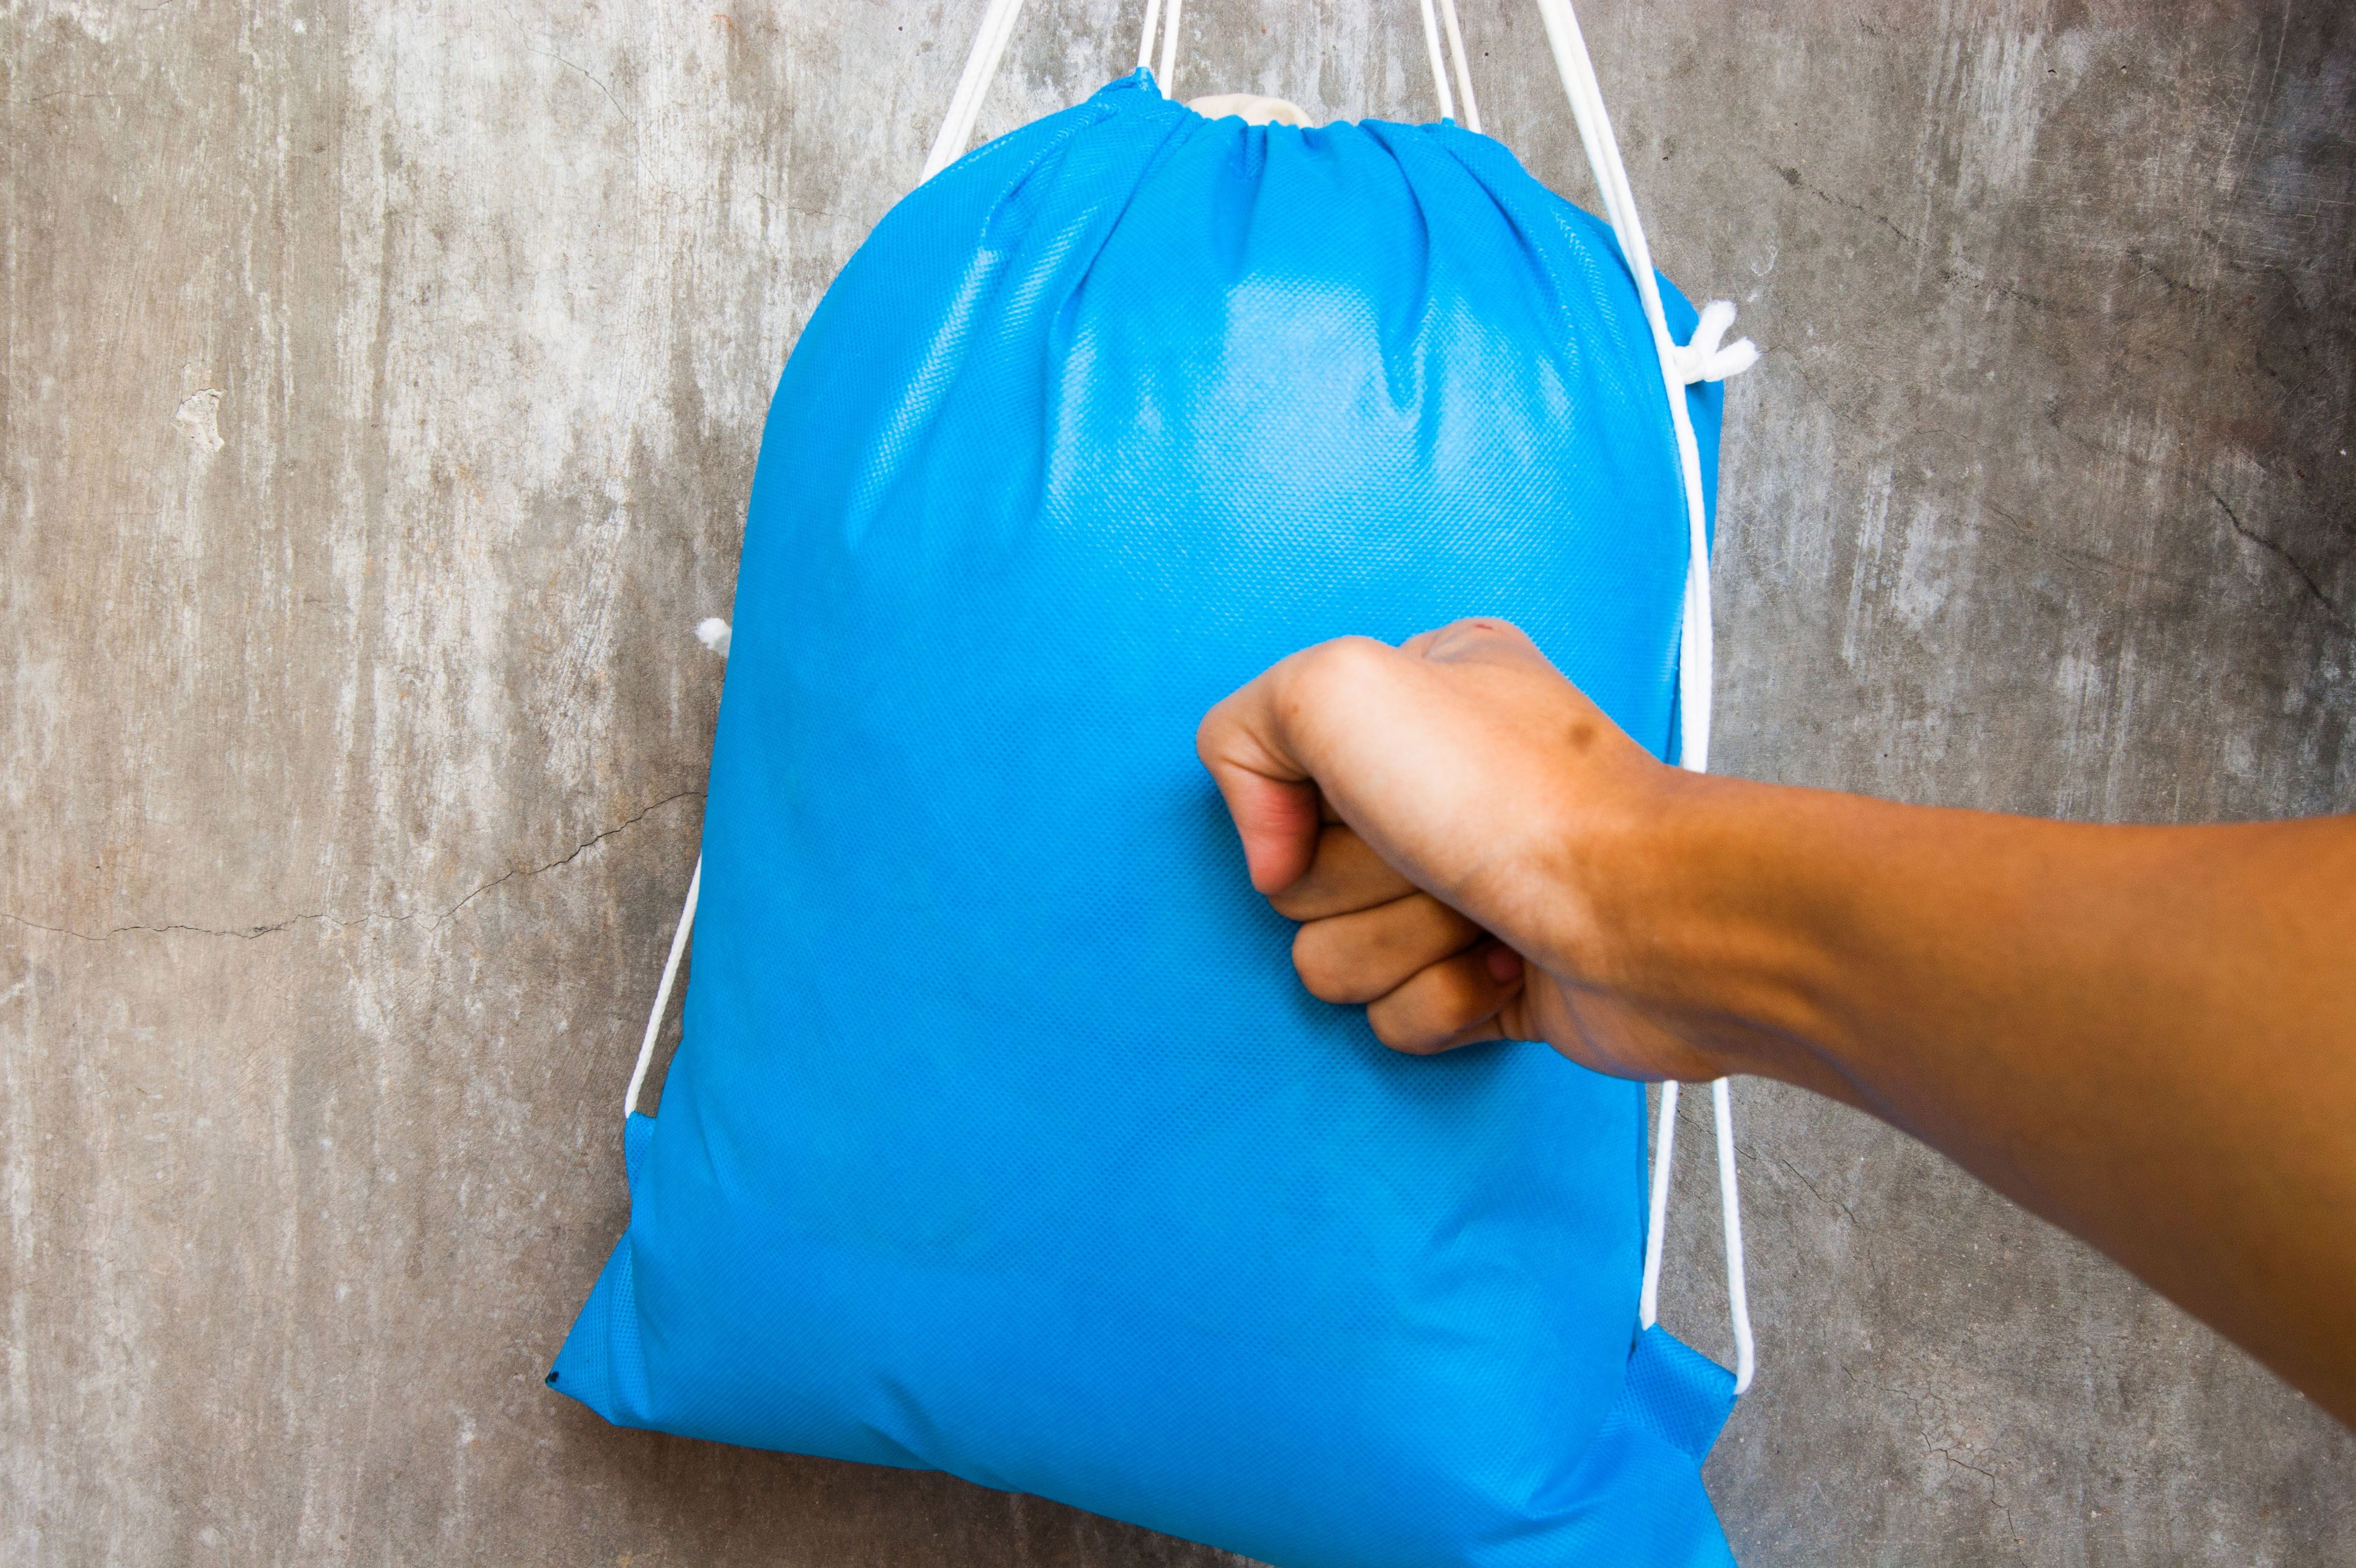 How To Make A Punching Bag For Free  Via Wikihow